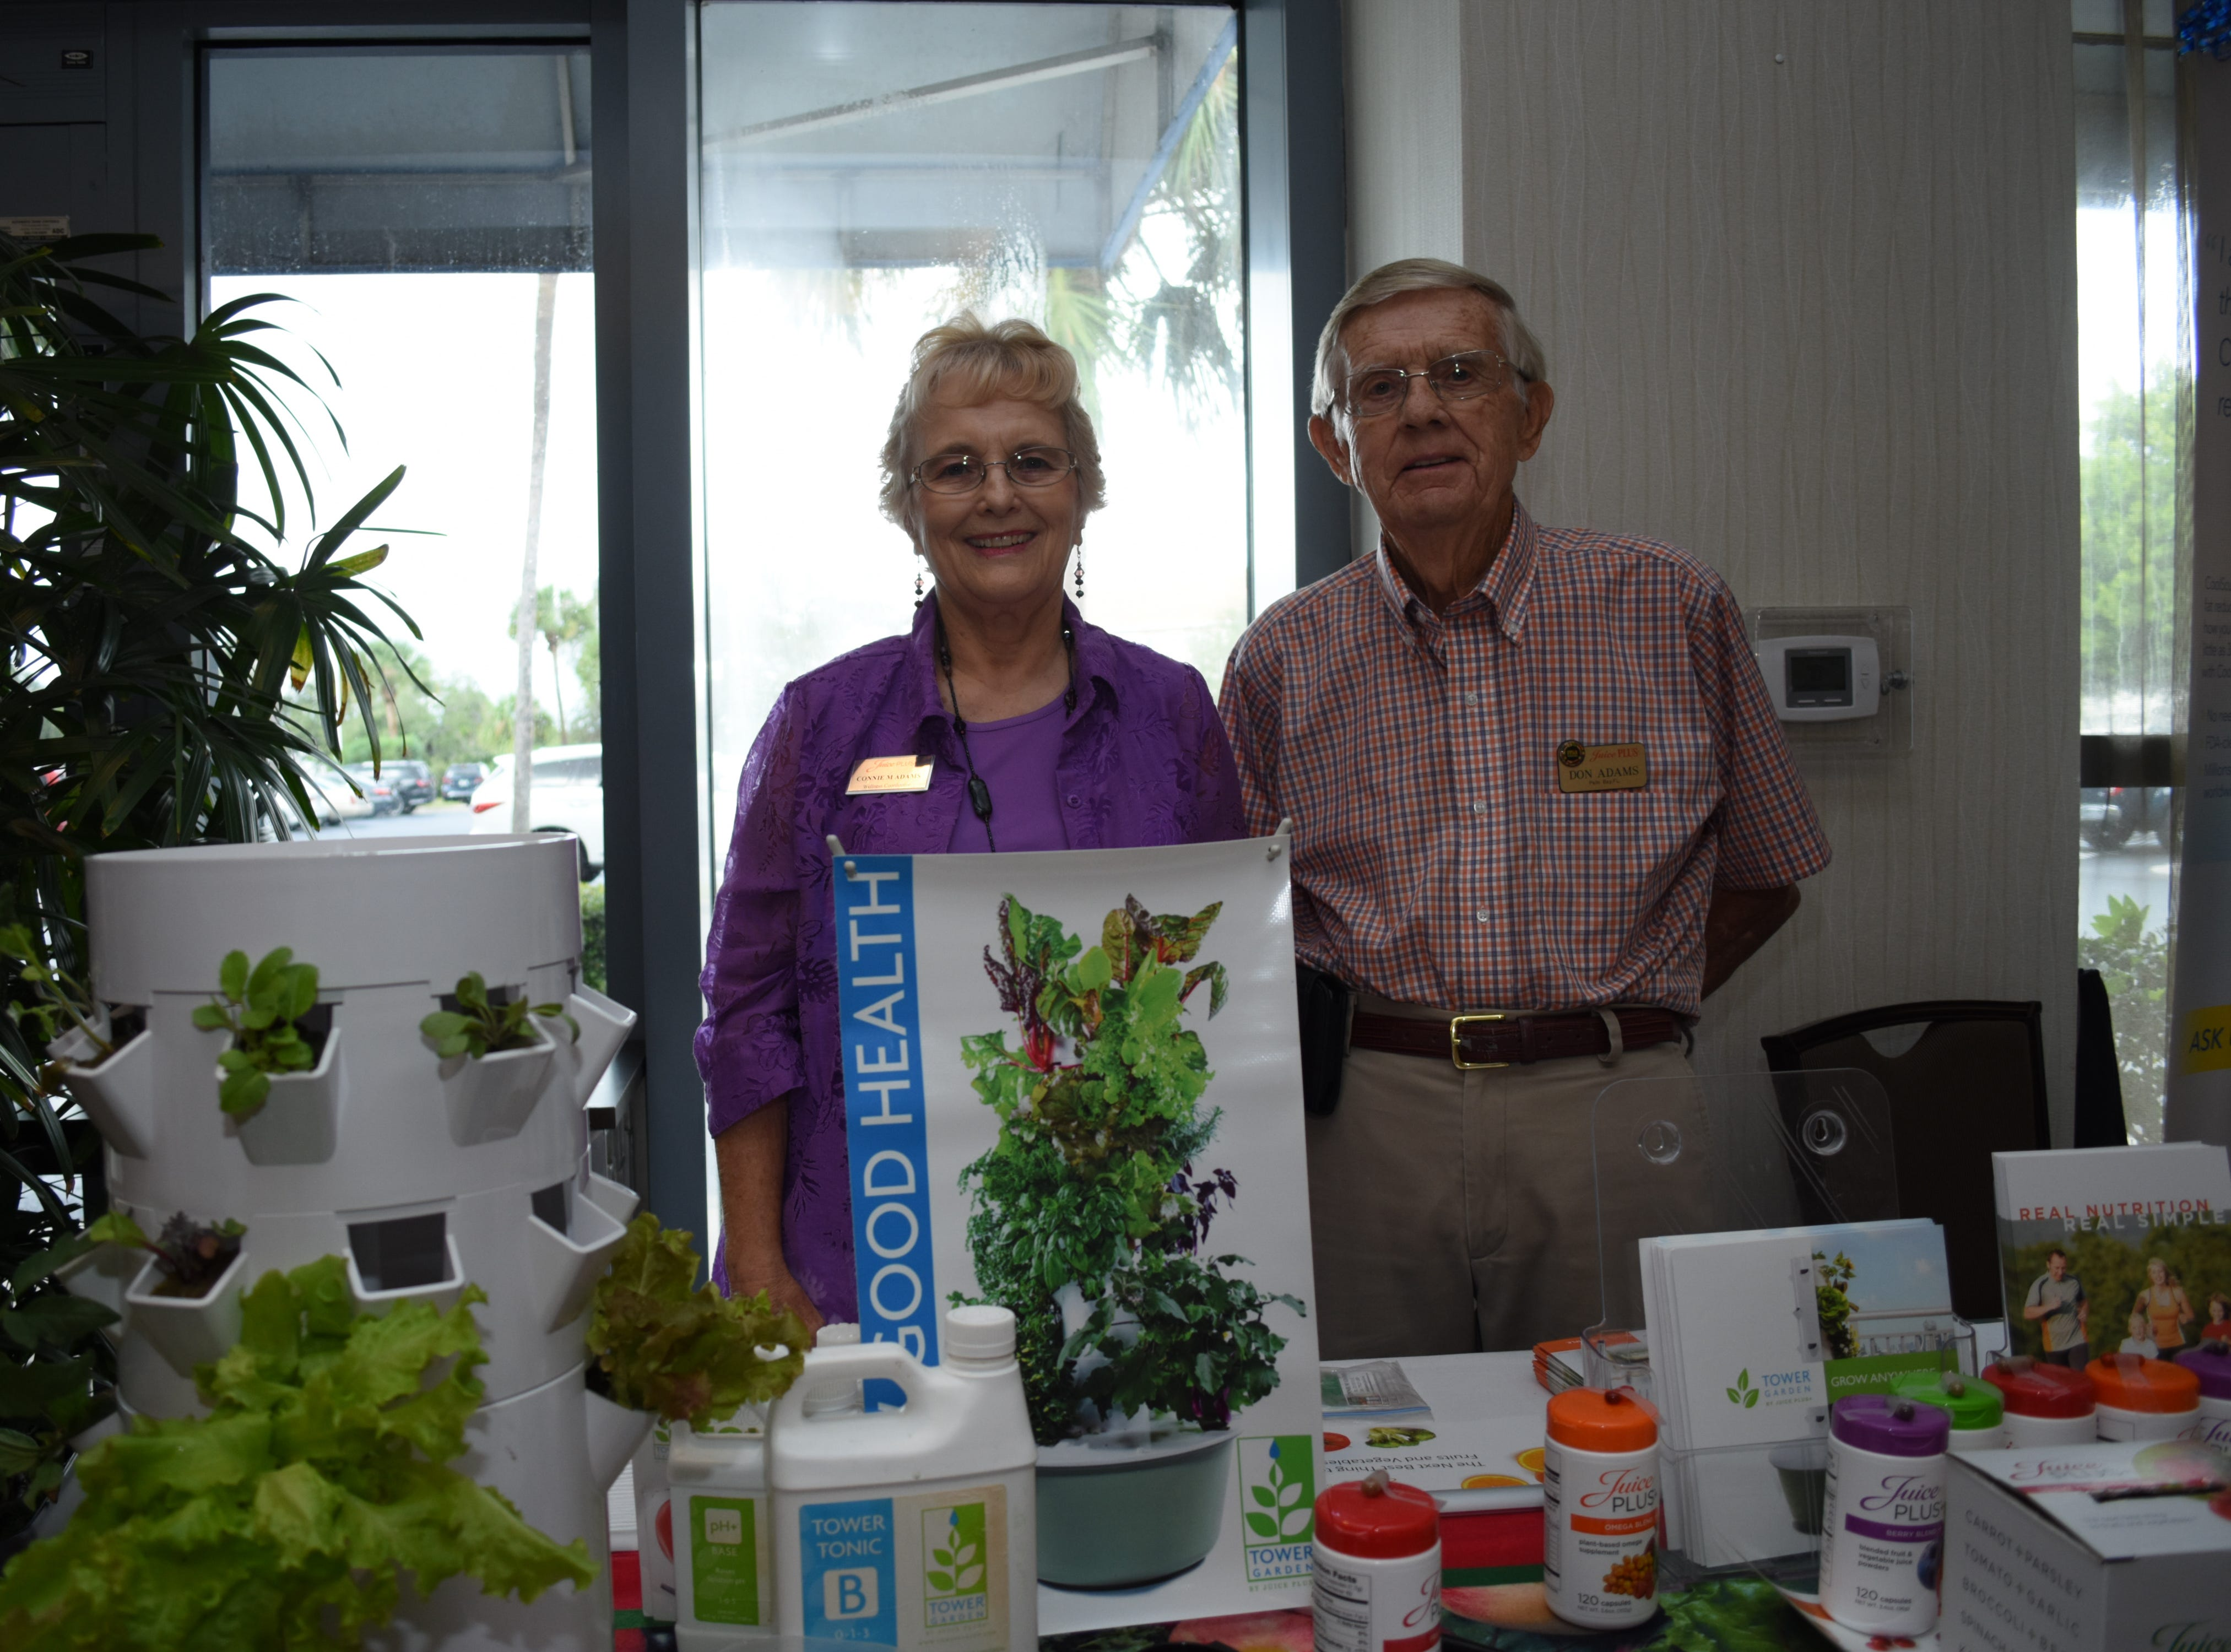 Connie and Don Adams with Juice PLUS pose for a photo with their table.